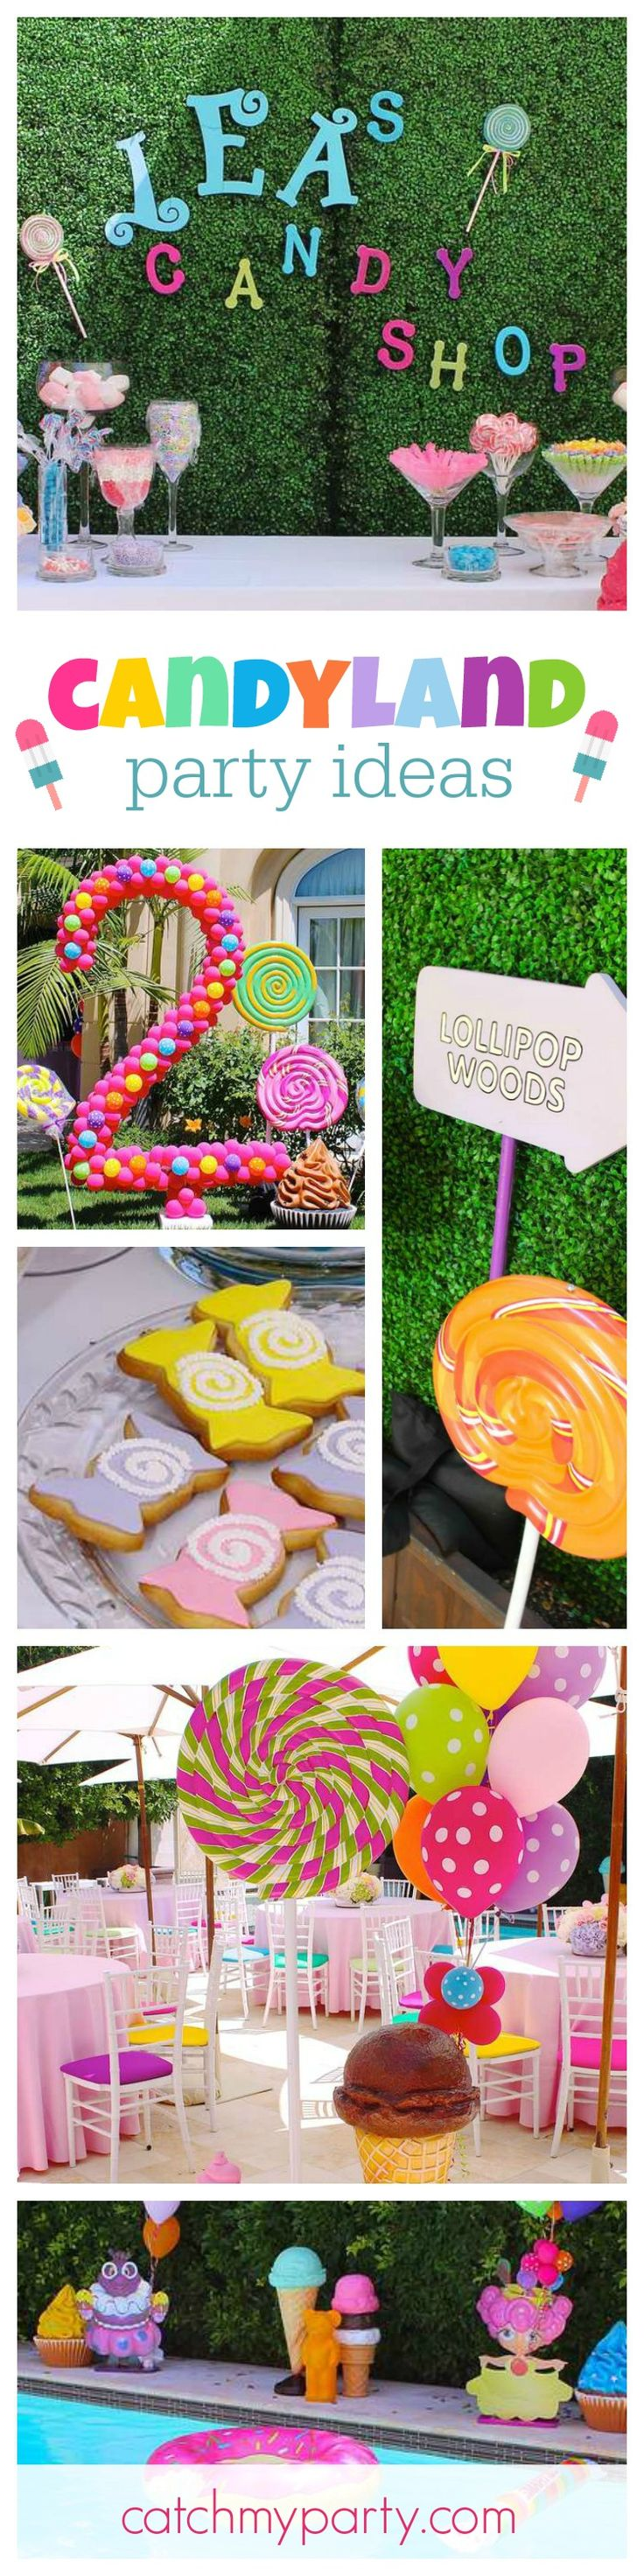 352 best candy party ideas images on pinterest birthday party